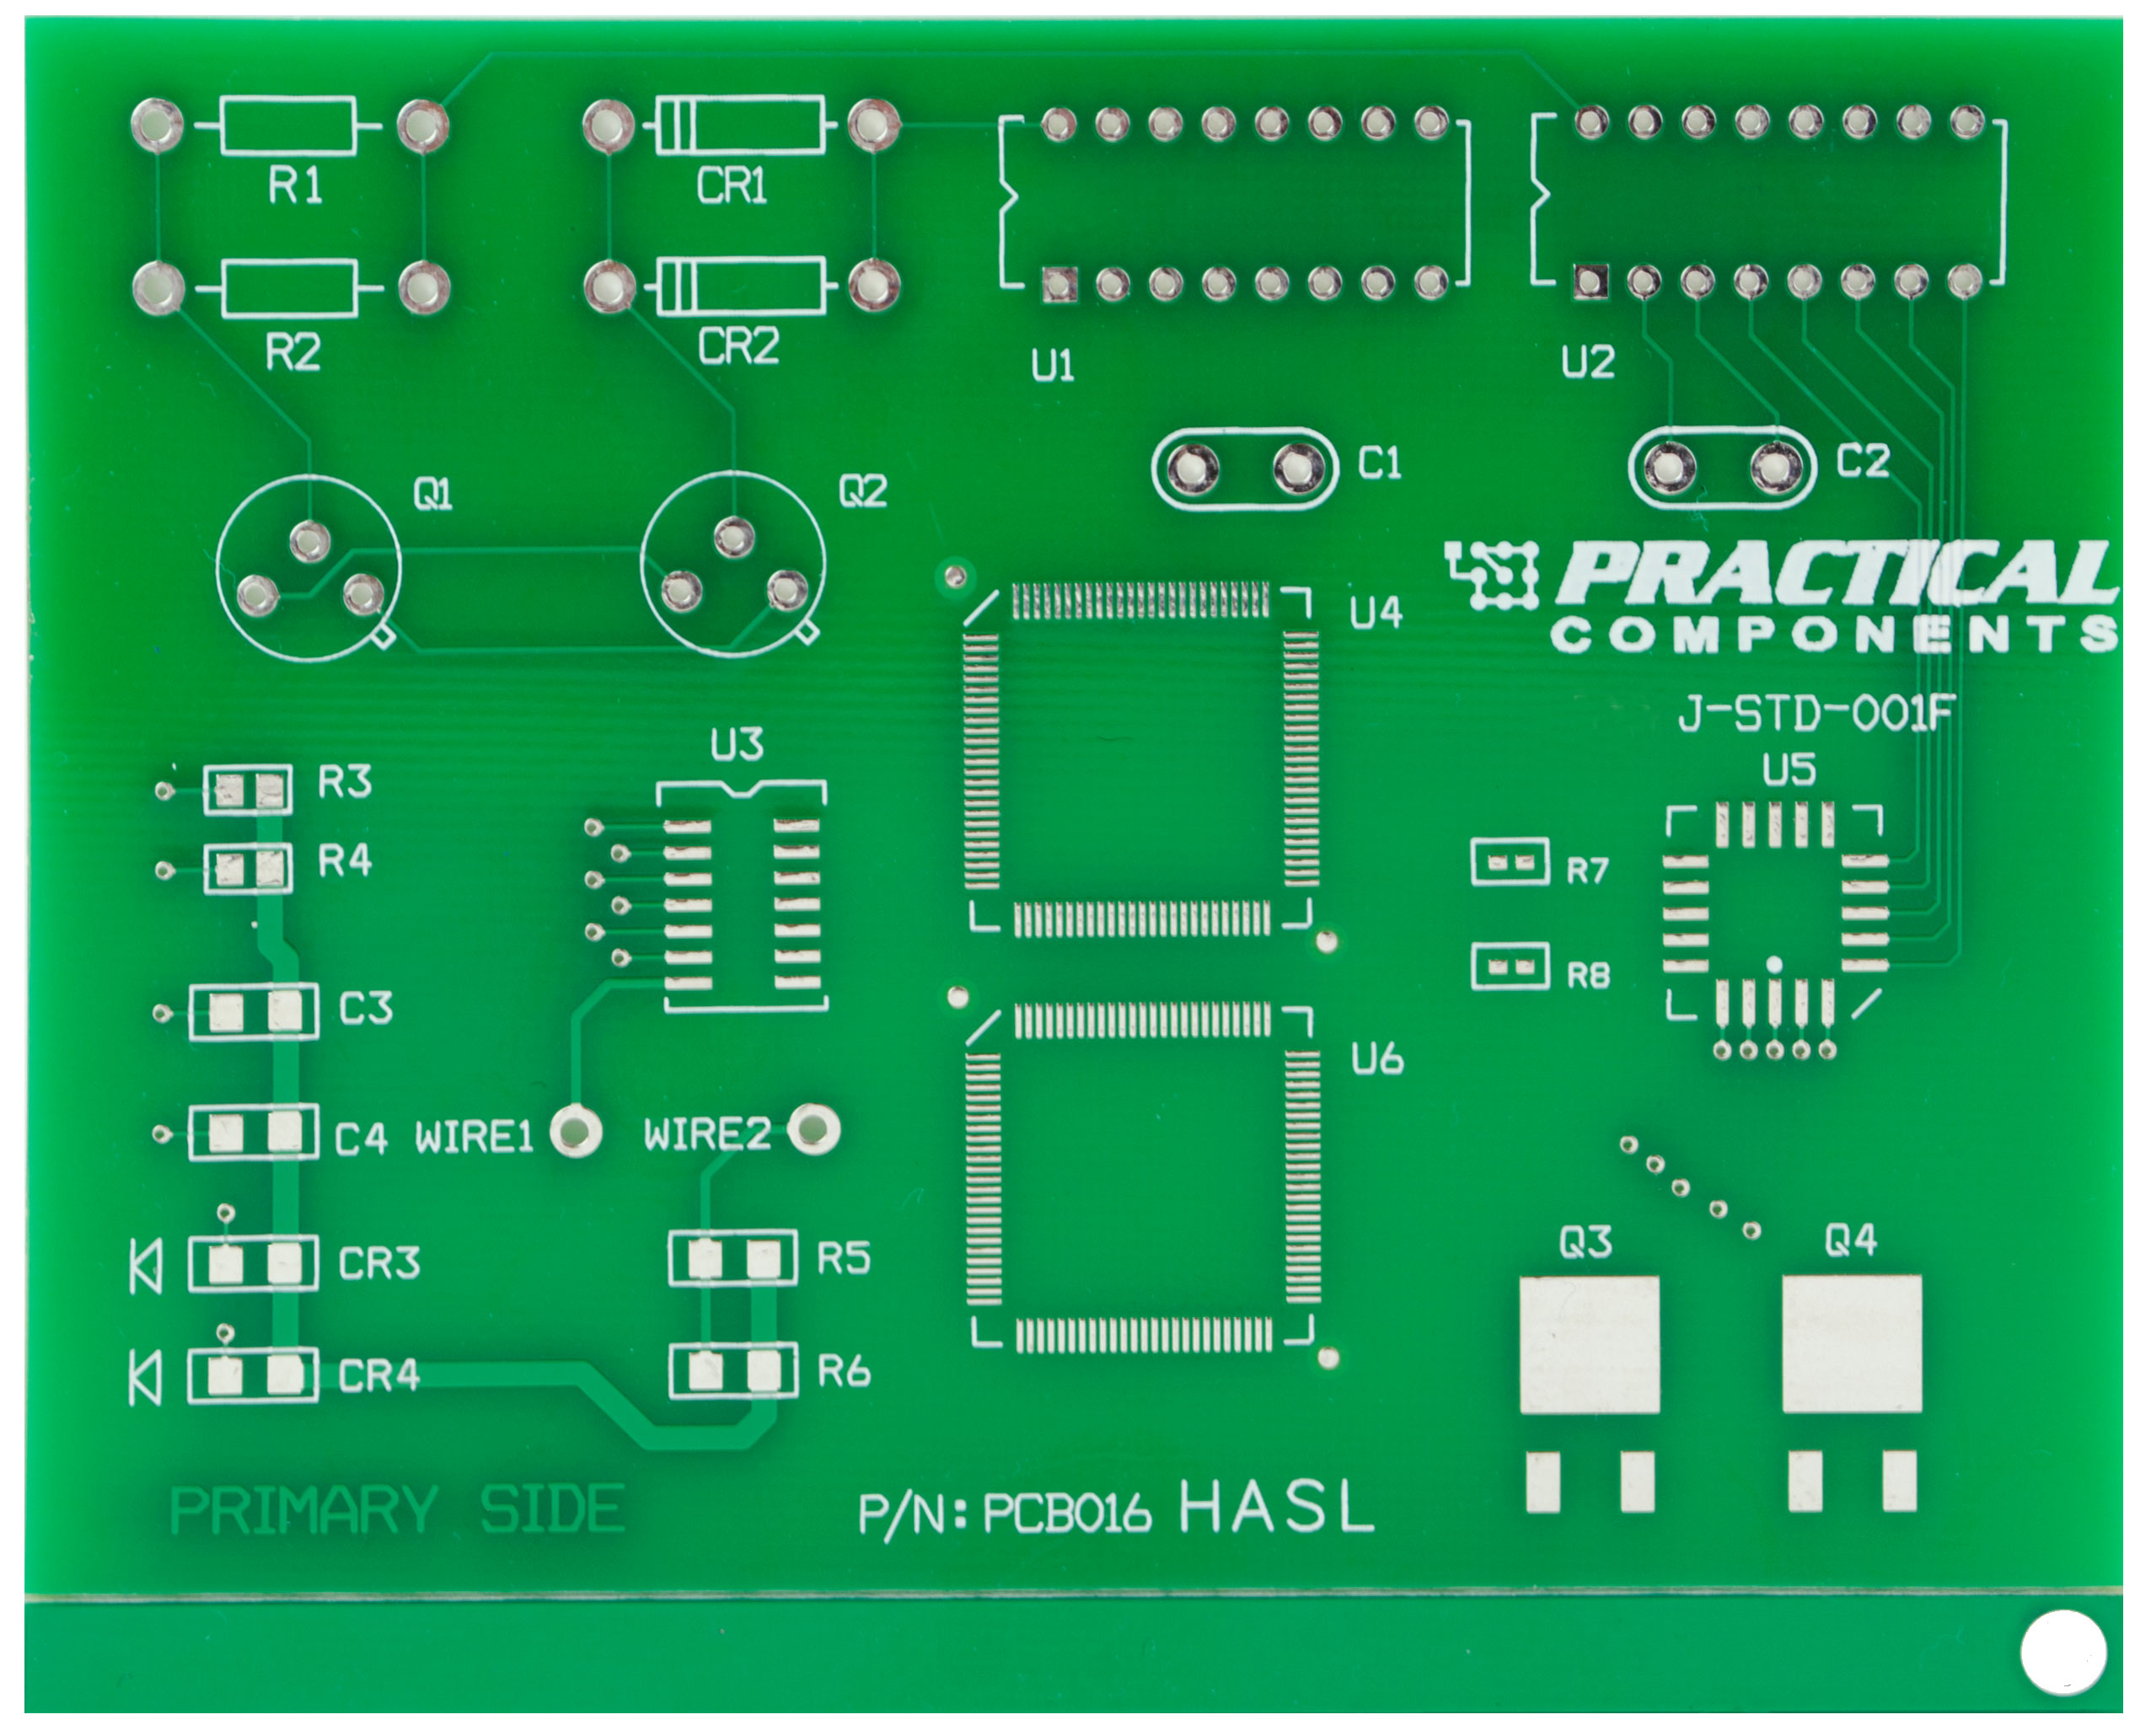 PC016-IPC J-Std 001-REV F Solder Training Kit